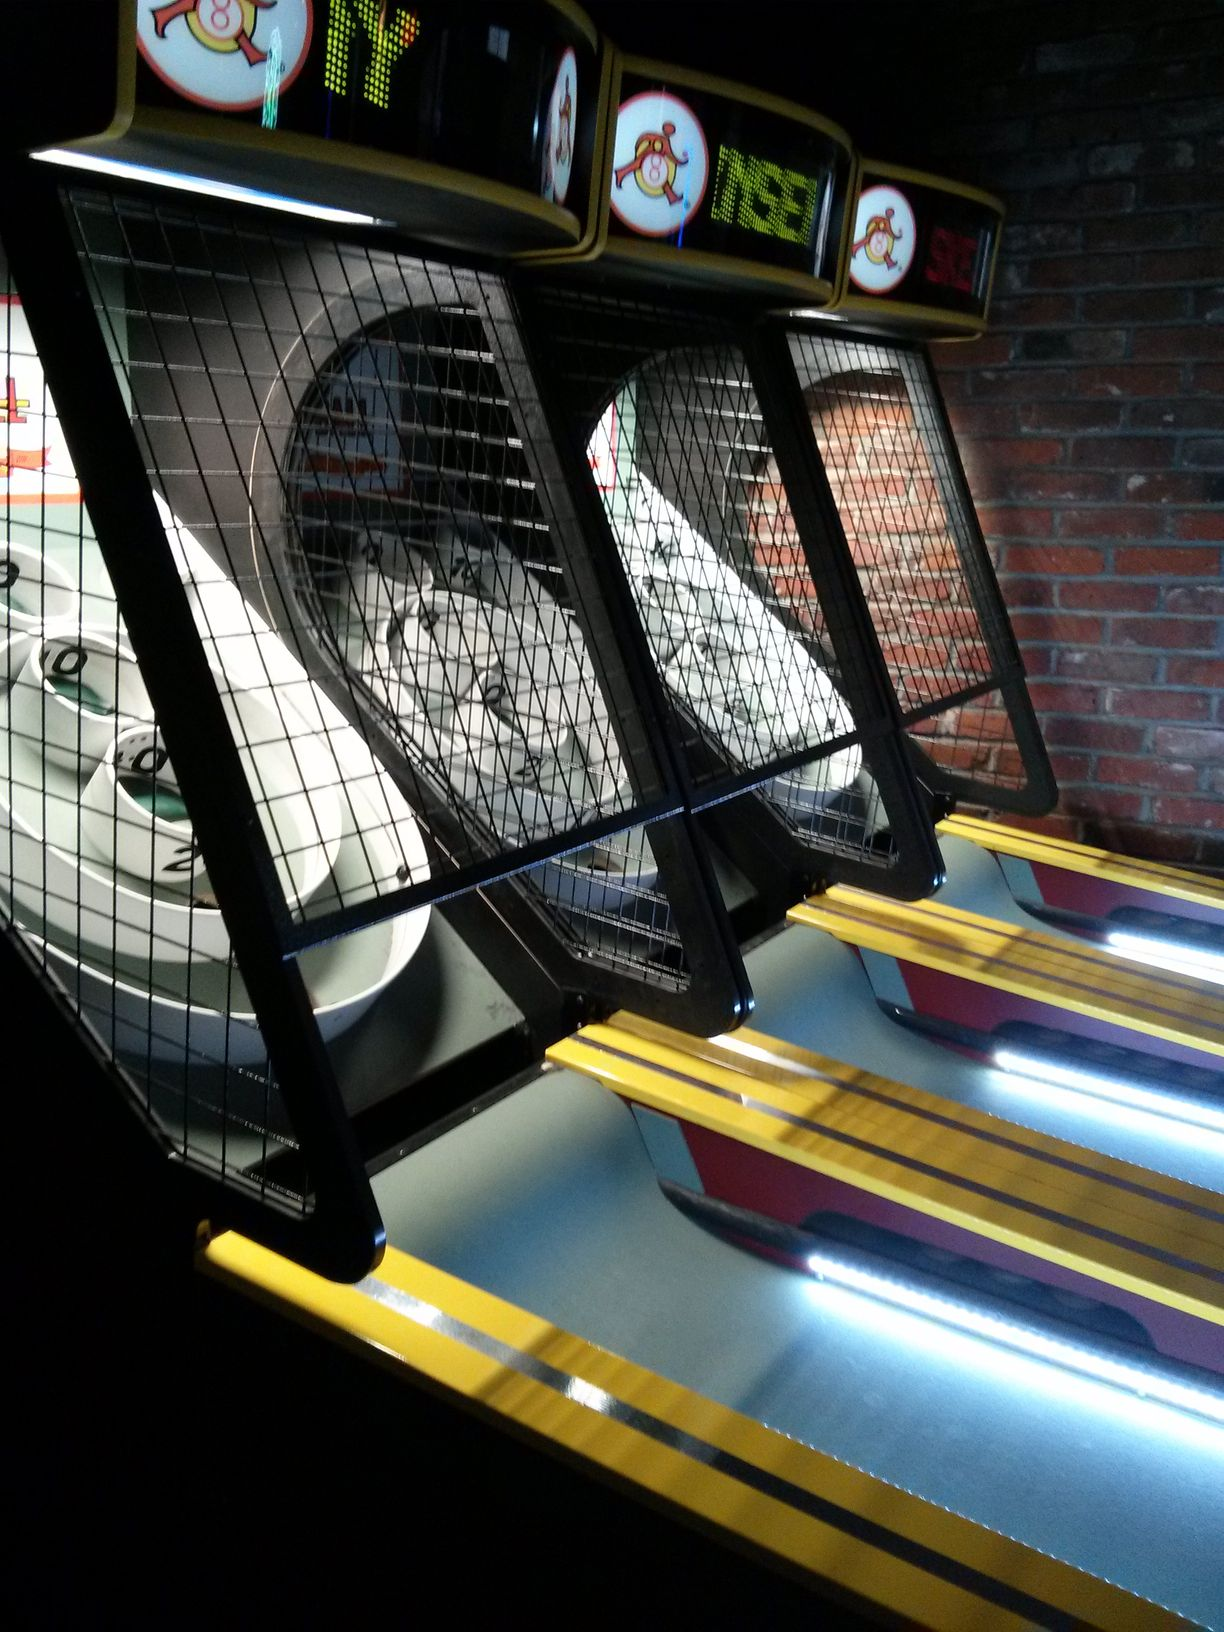 The 1-Up: les 3 pistes de Skee-Ball